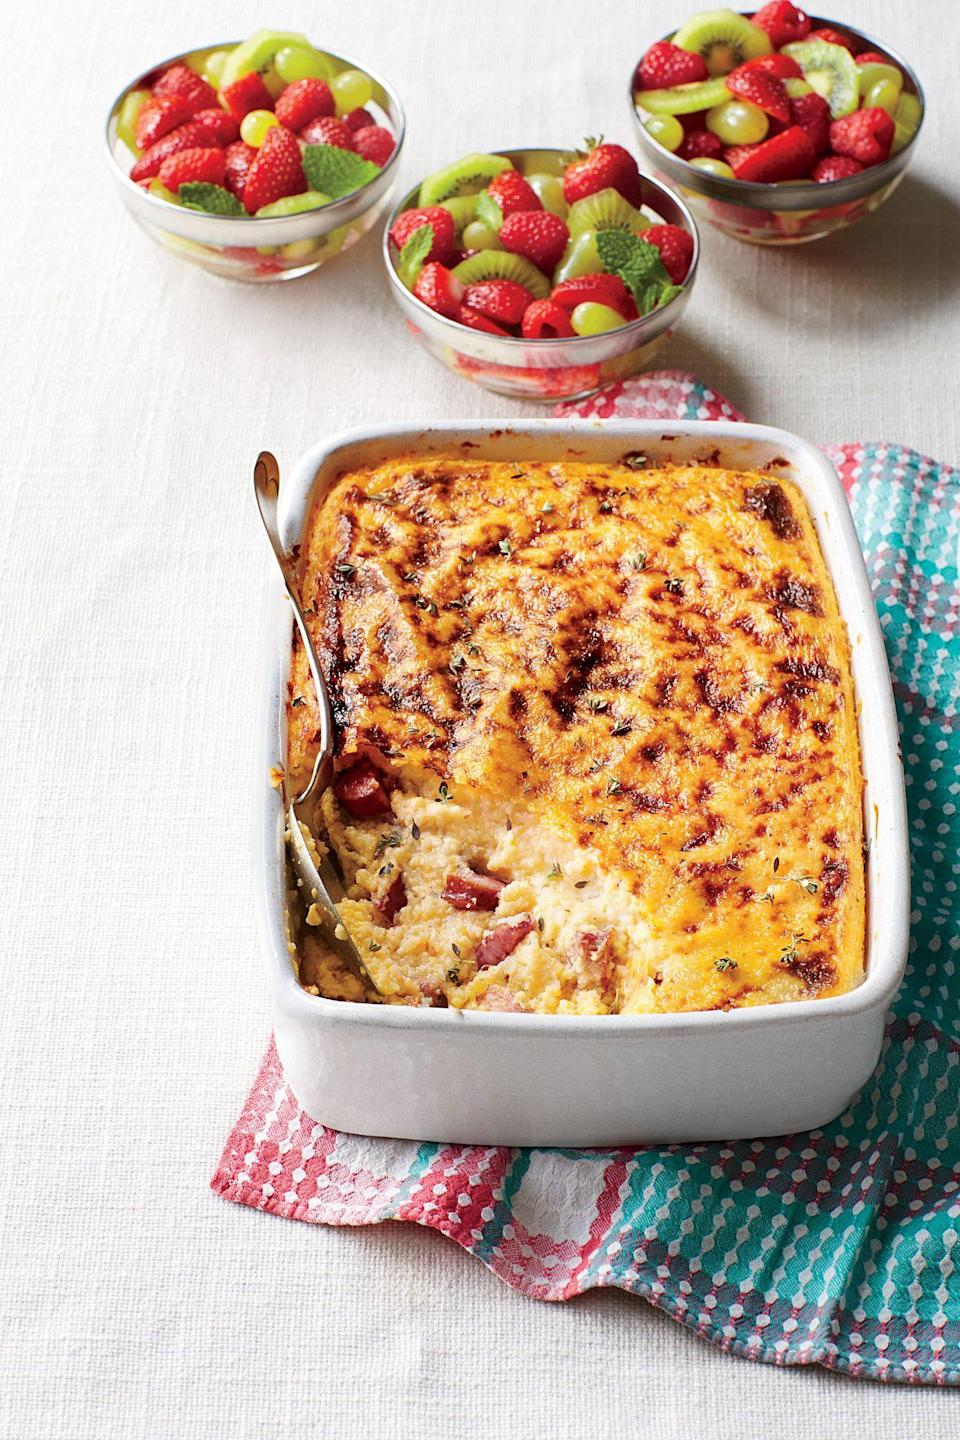 """<p><strong>Recipe: <a href=""""https://www.southernliving.com/syndication/smoky-sausage-grits-casserole"""" rel=""""nofollow noopener"""" target=""""_blank"""" data-ylk=""""slk:Smoky Sausage-and-Grits Casserole"""" class=""""link rapid-noclick-resp"""">Smoky Sausage-and-Grits Casserole</a></strong></p> <p>This casserole can be stored in the refrigerator for up to four days before it's cooked. </p>"""